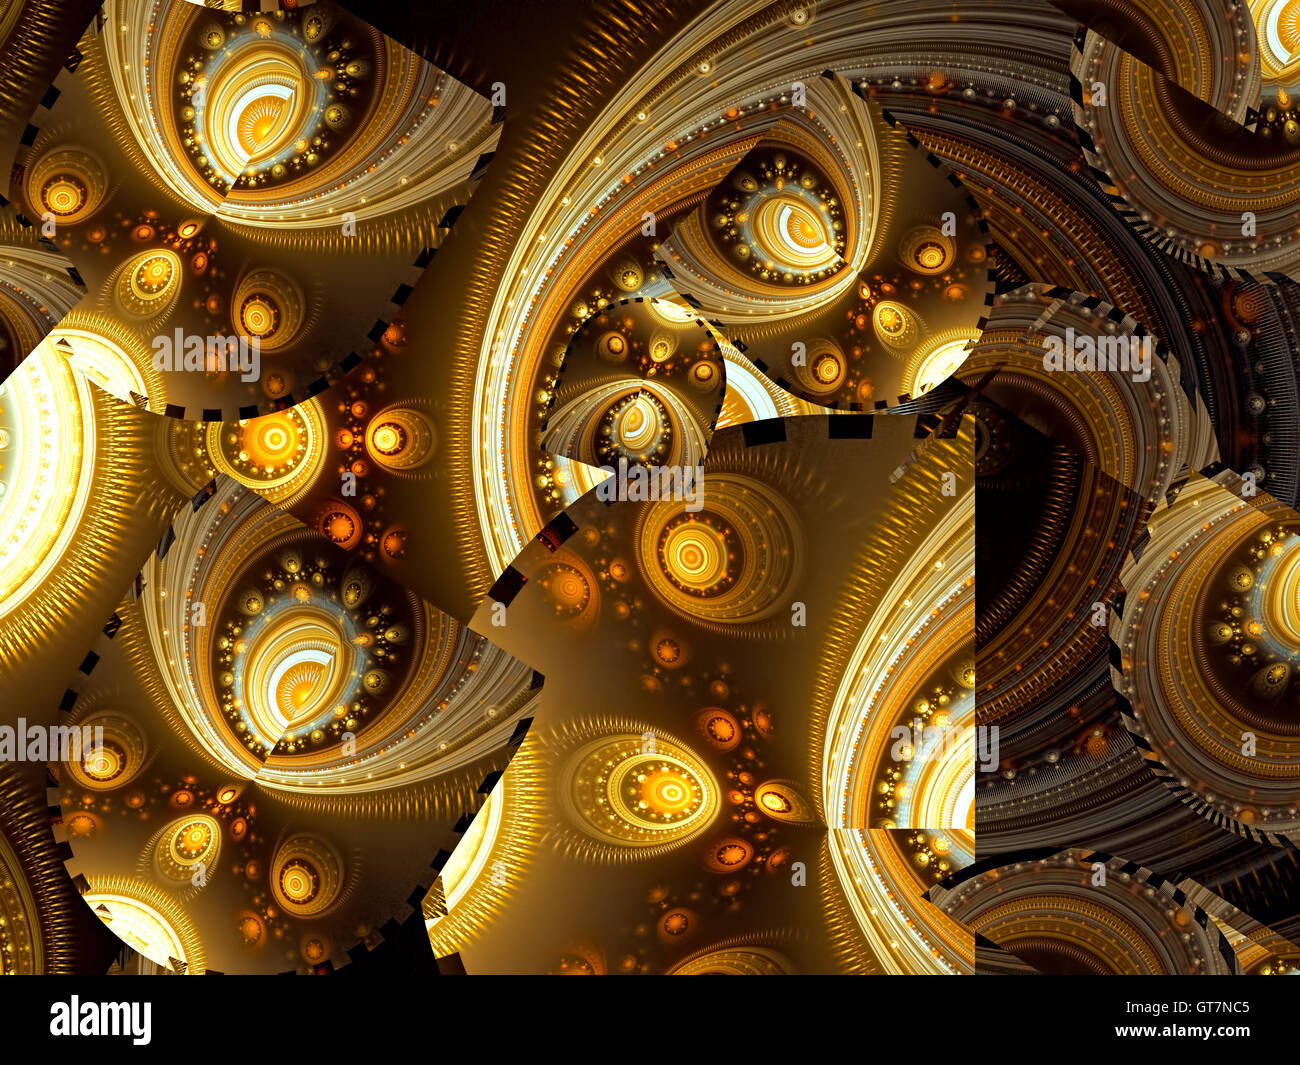 Abstract chaos psychedelic background - digitally generated imag - Stock Image